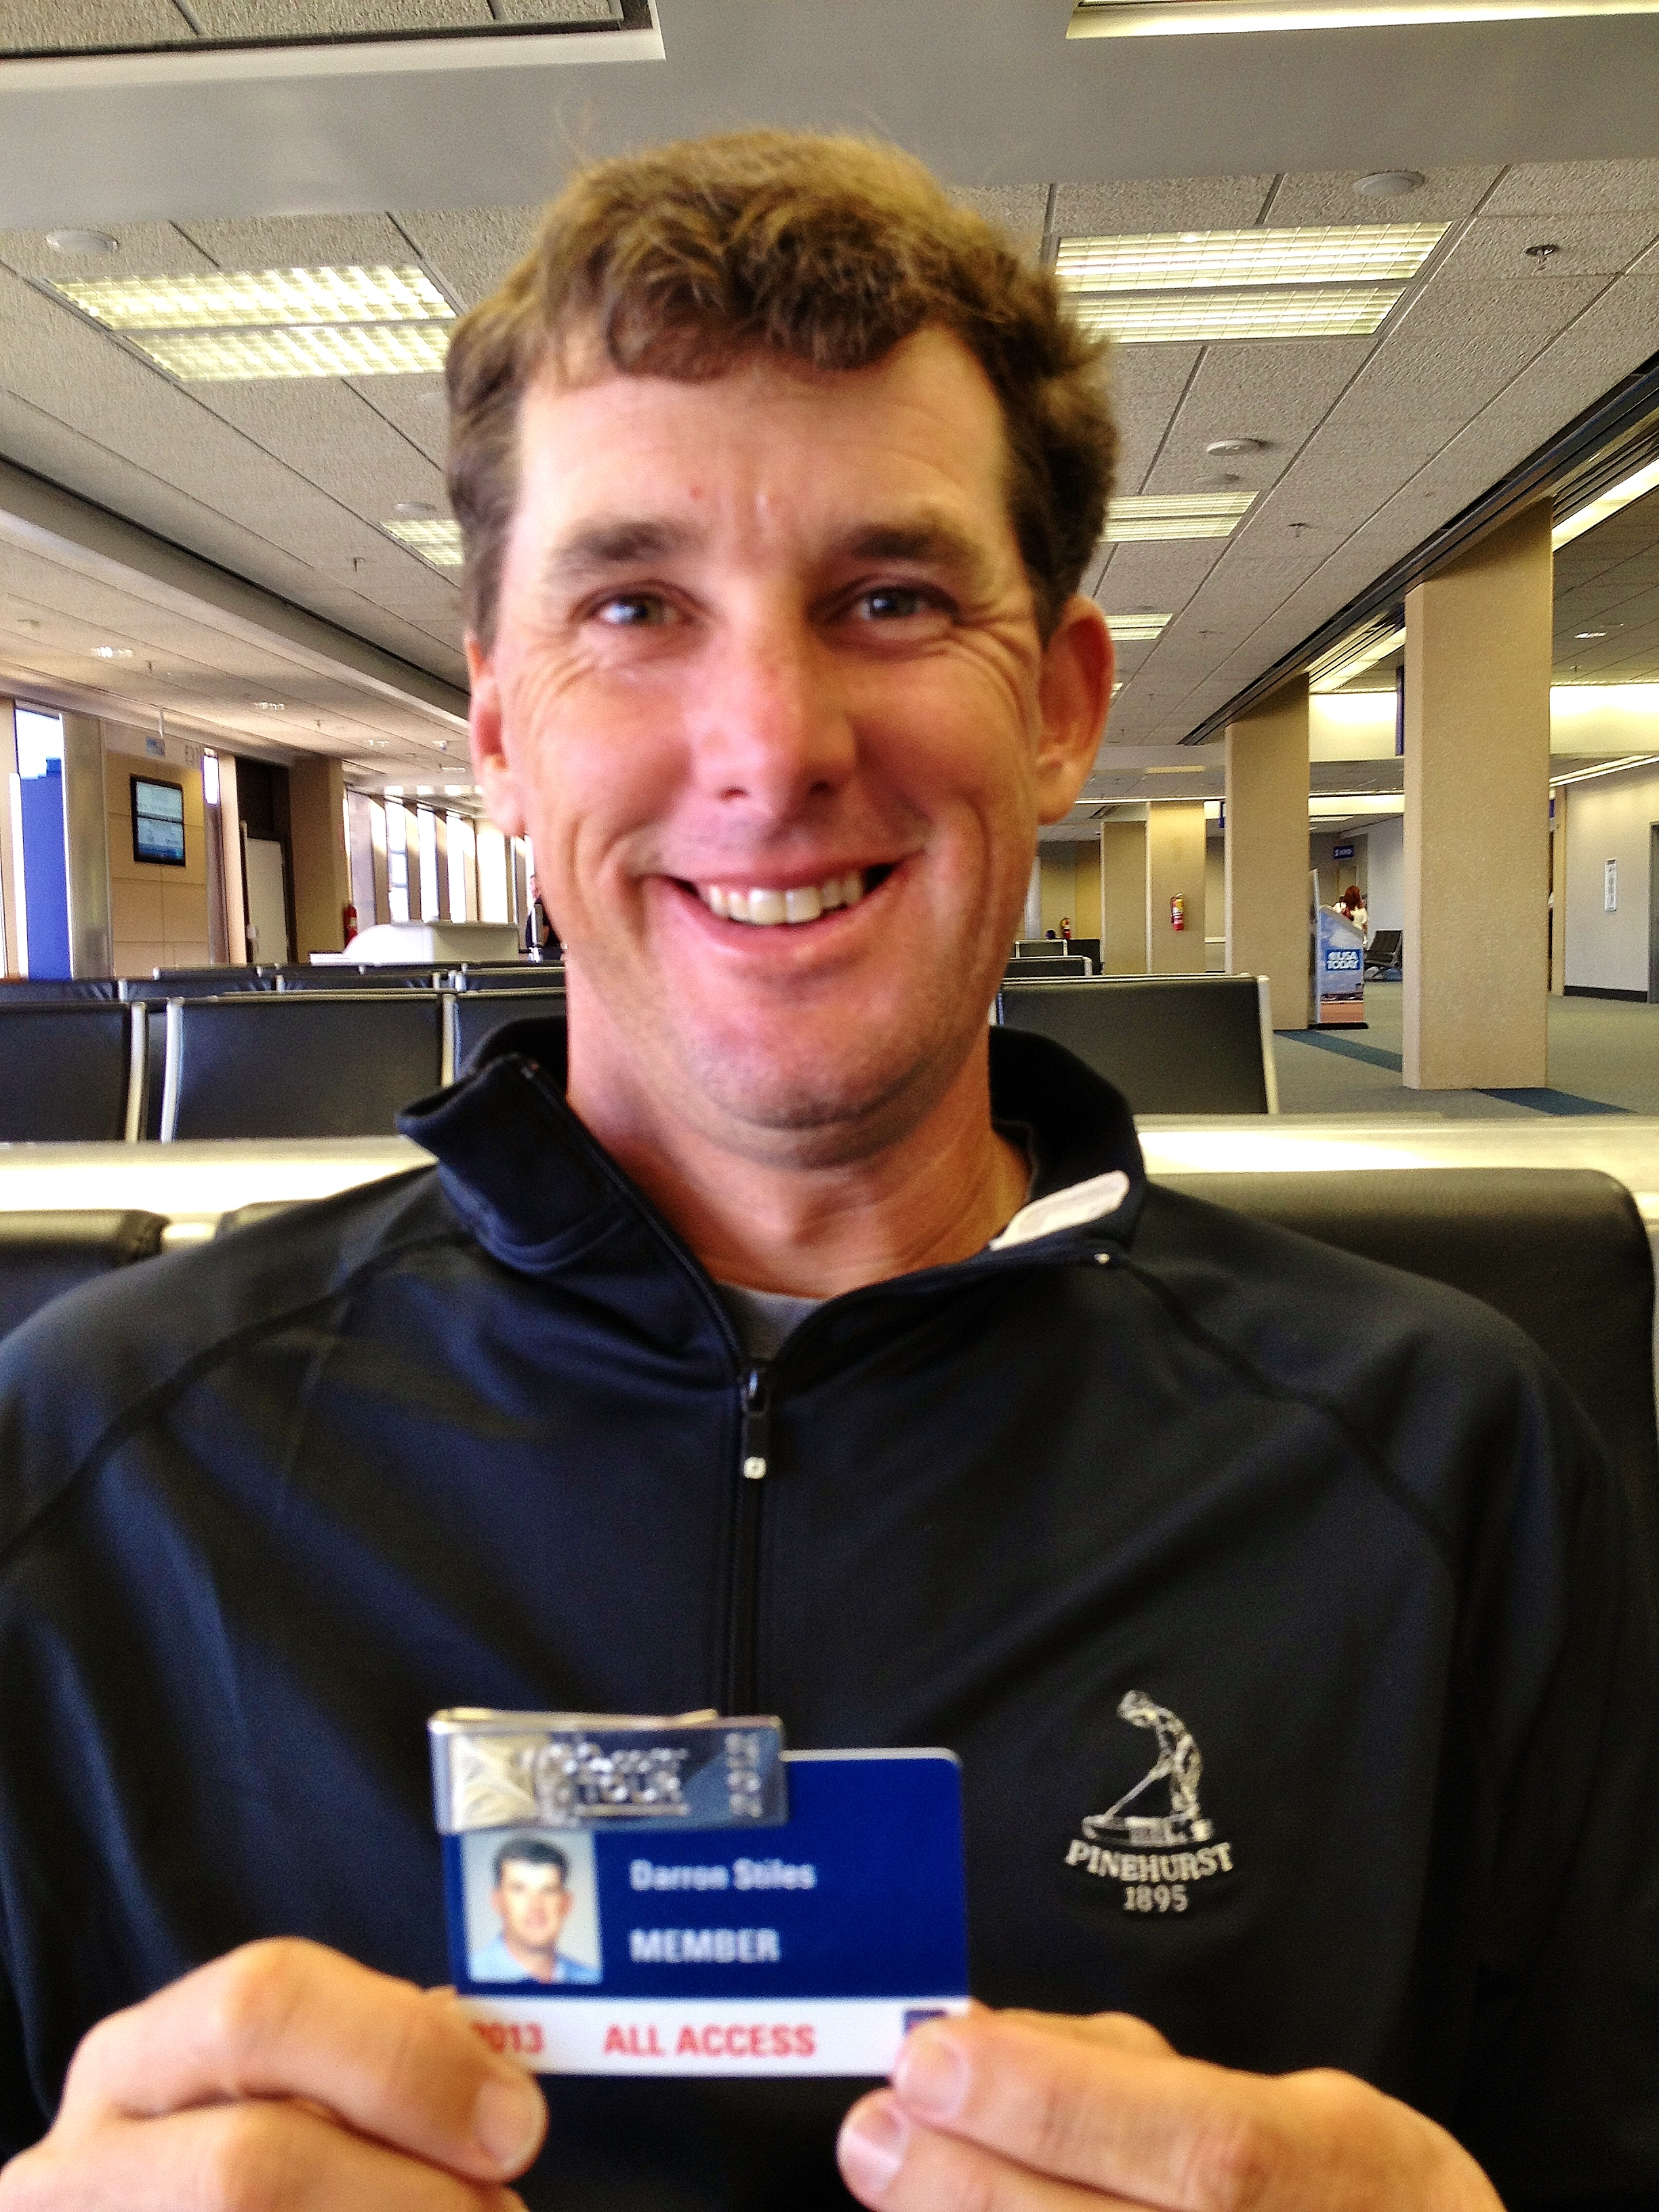 Pinehurst Country Club member Darron Stiles holds his 2013 PGA Tour card.